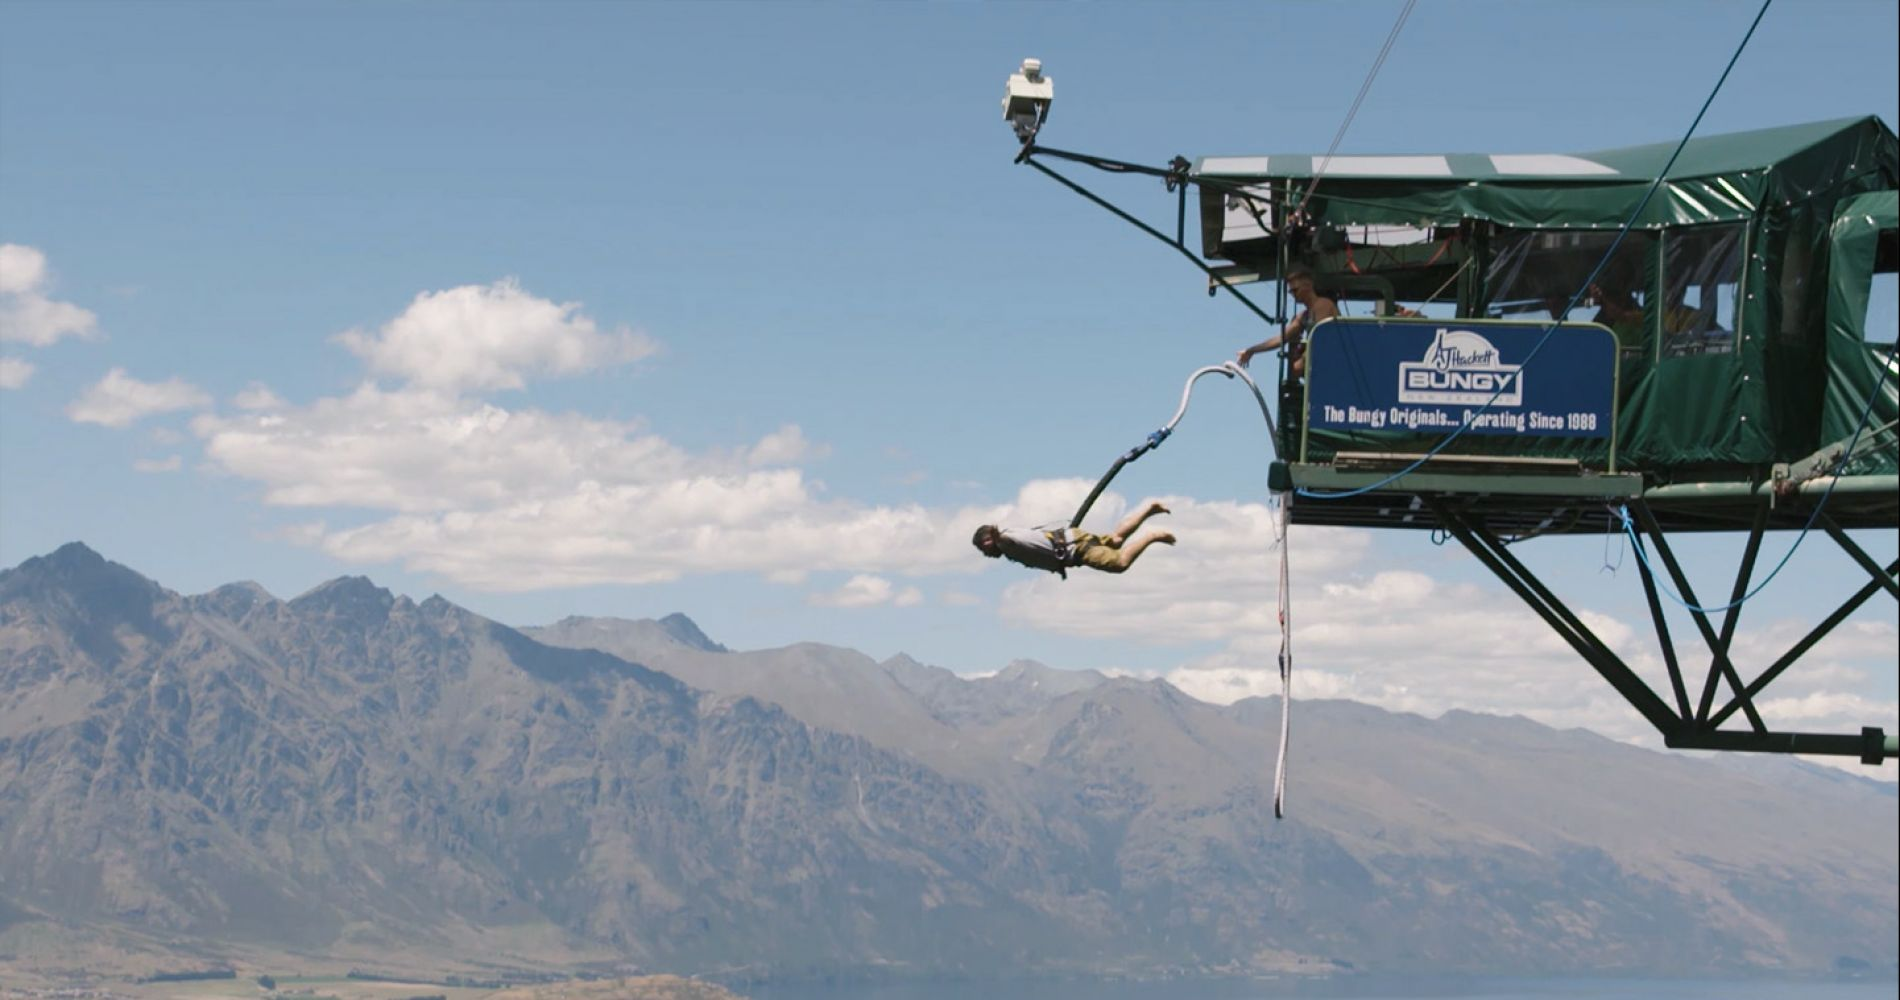 Ledge bungy jump in Queenstown